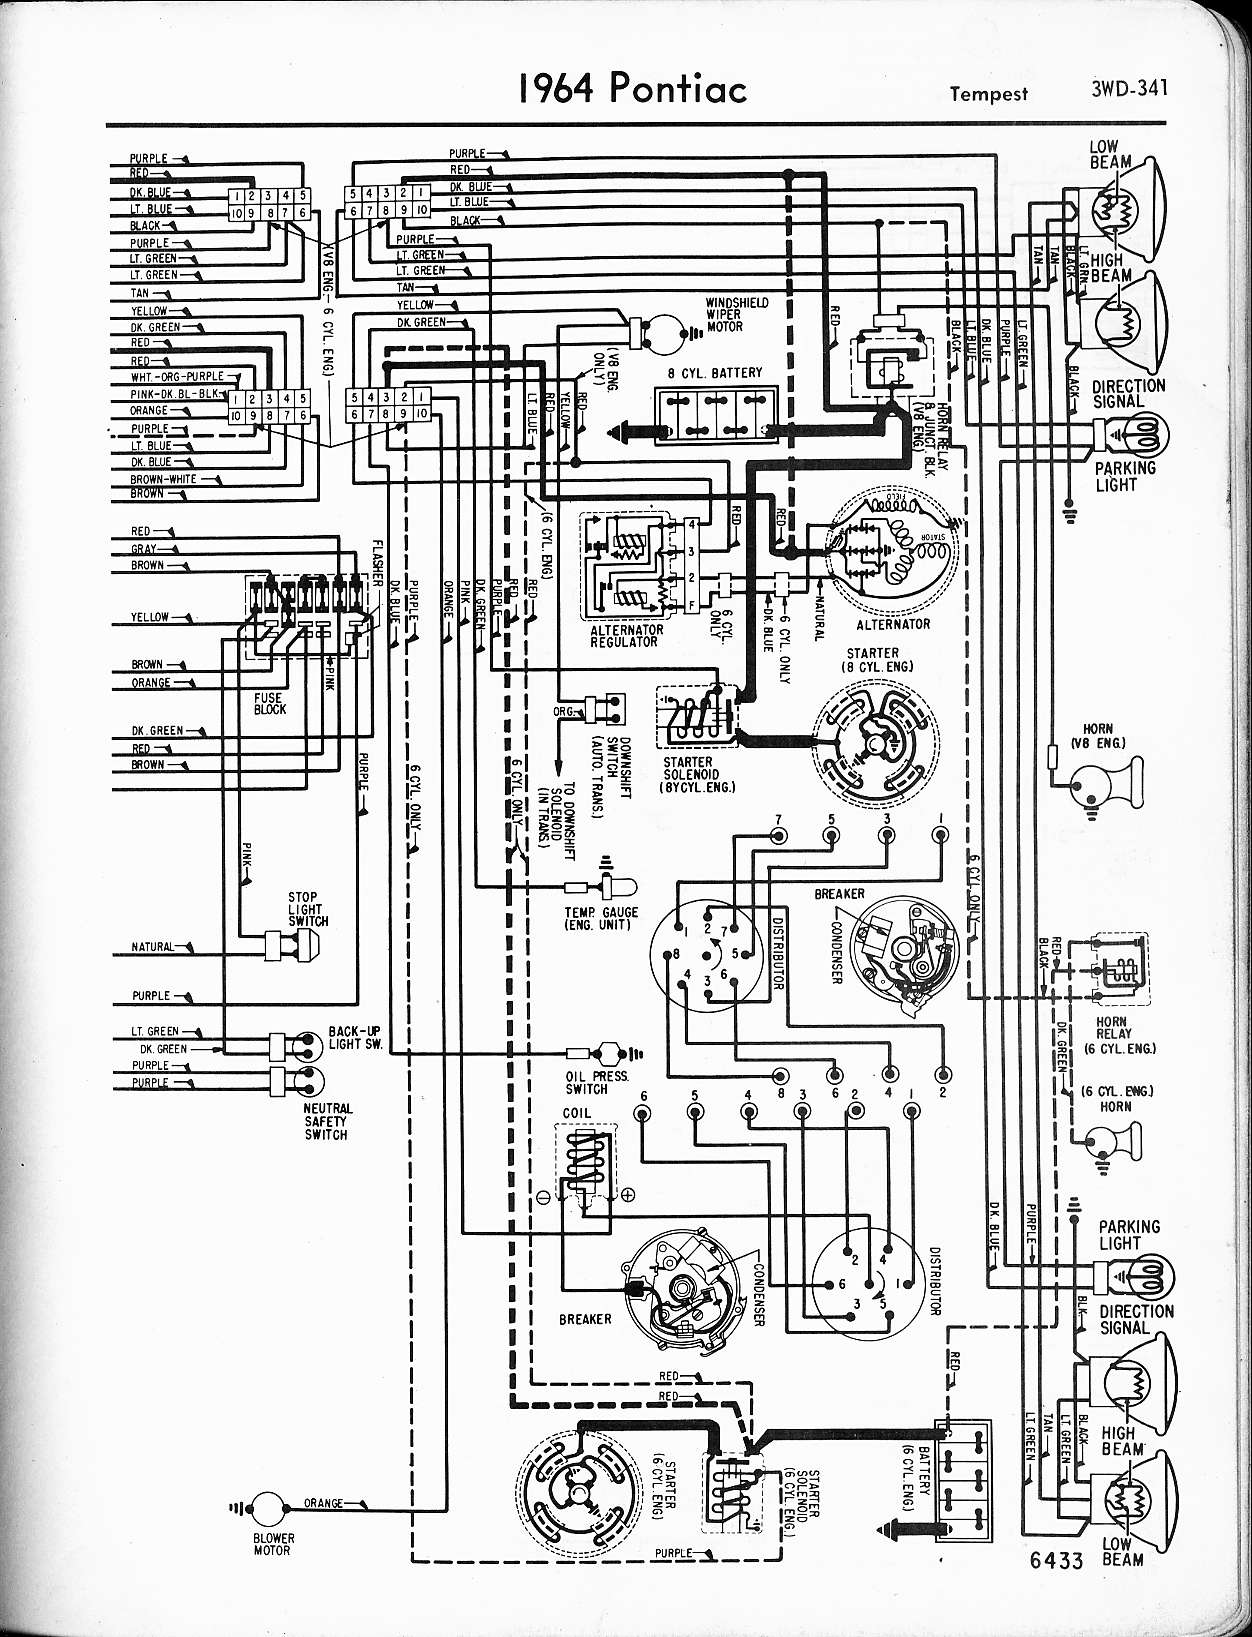 MWire5765-341  Gto Engine Wiring Diagram on 64 gto automatic transmission, 64 gto engine, 64 buick wiring diagrams,